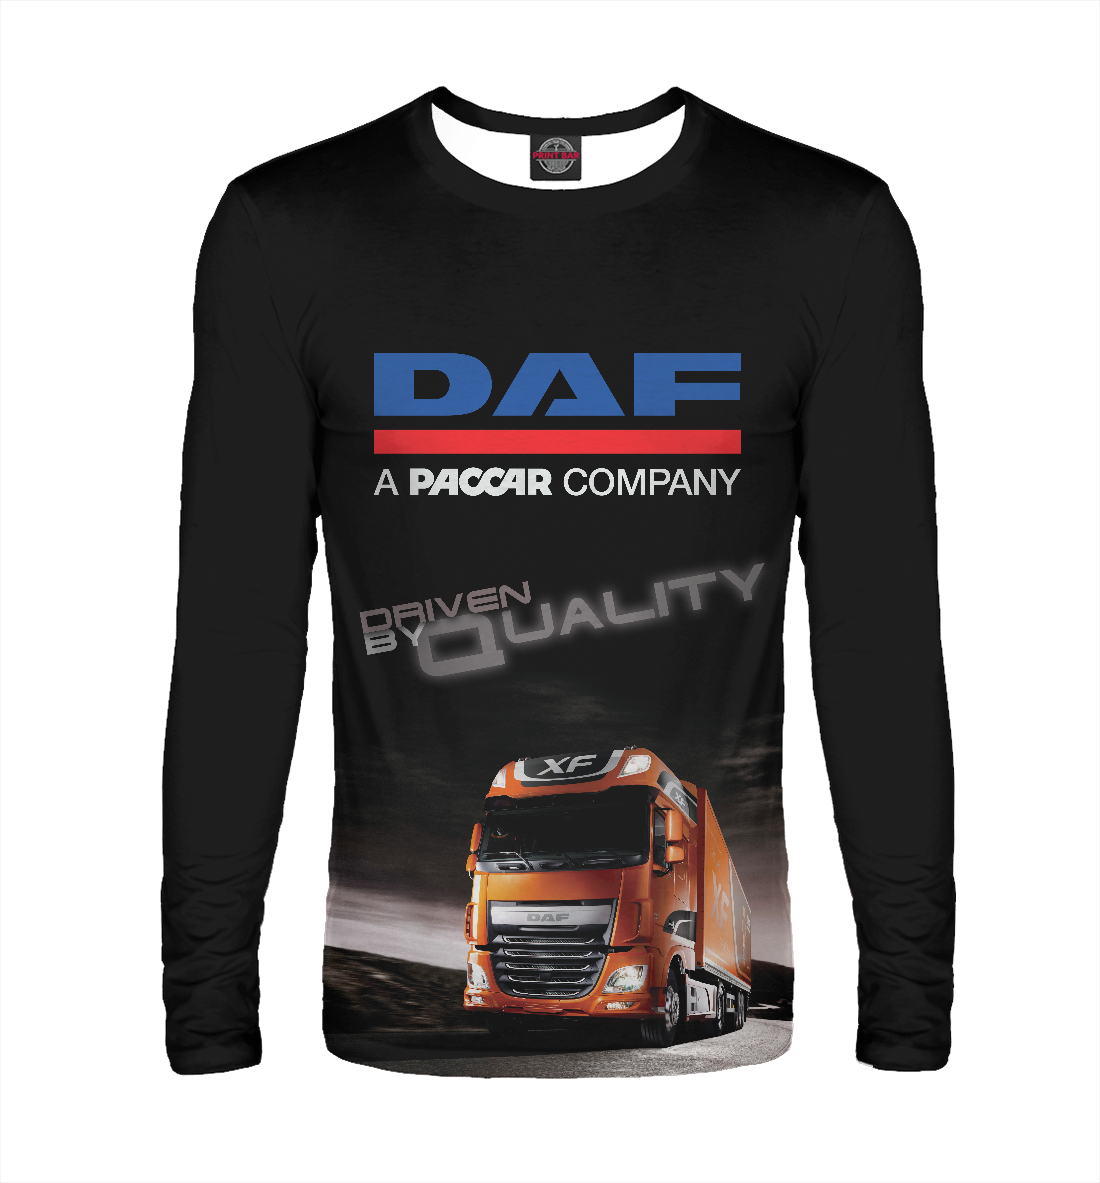 Фото - DAF - Driven By Quality courtney driver driven